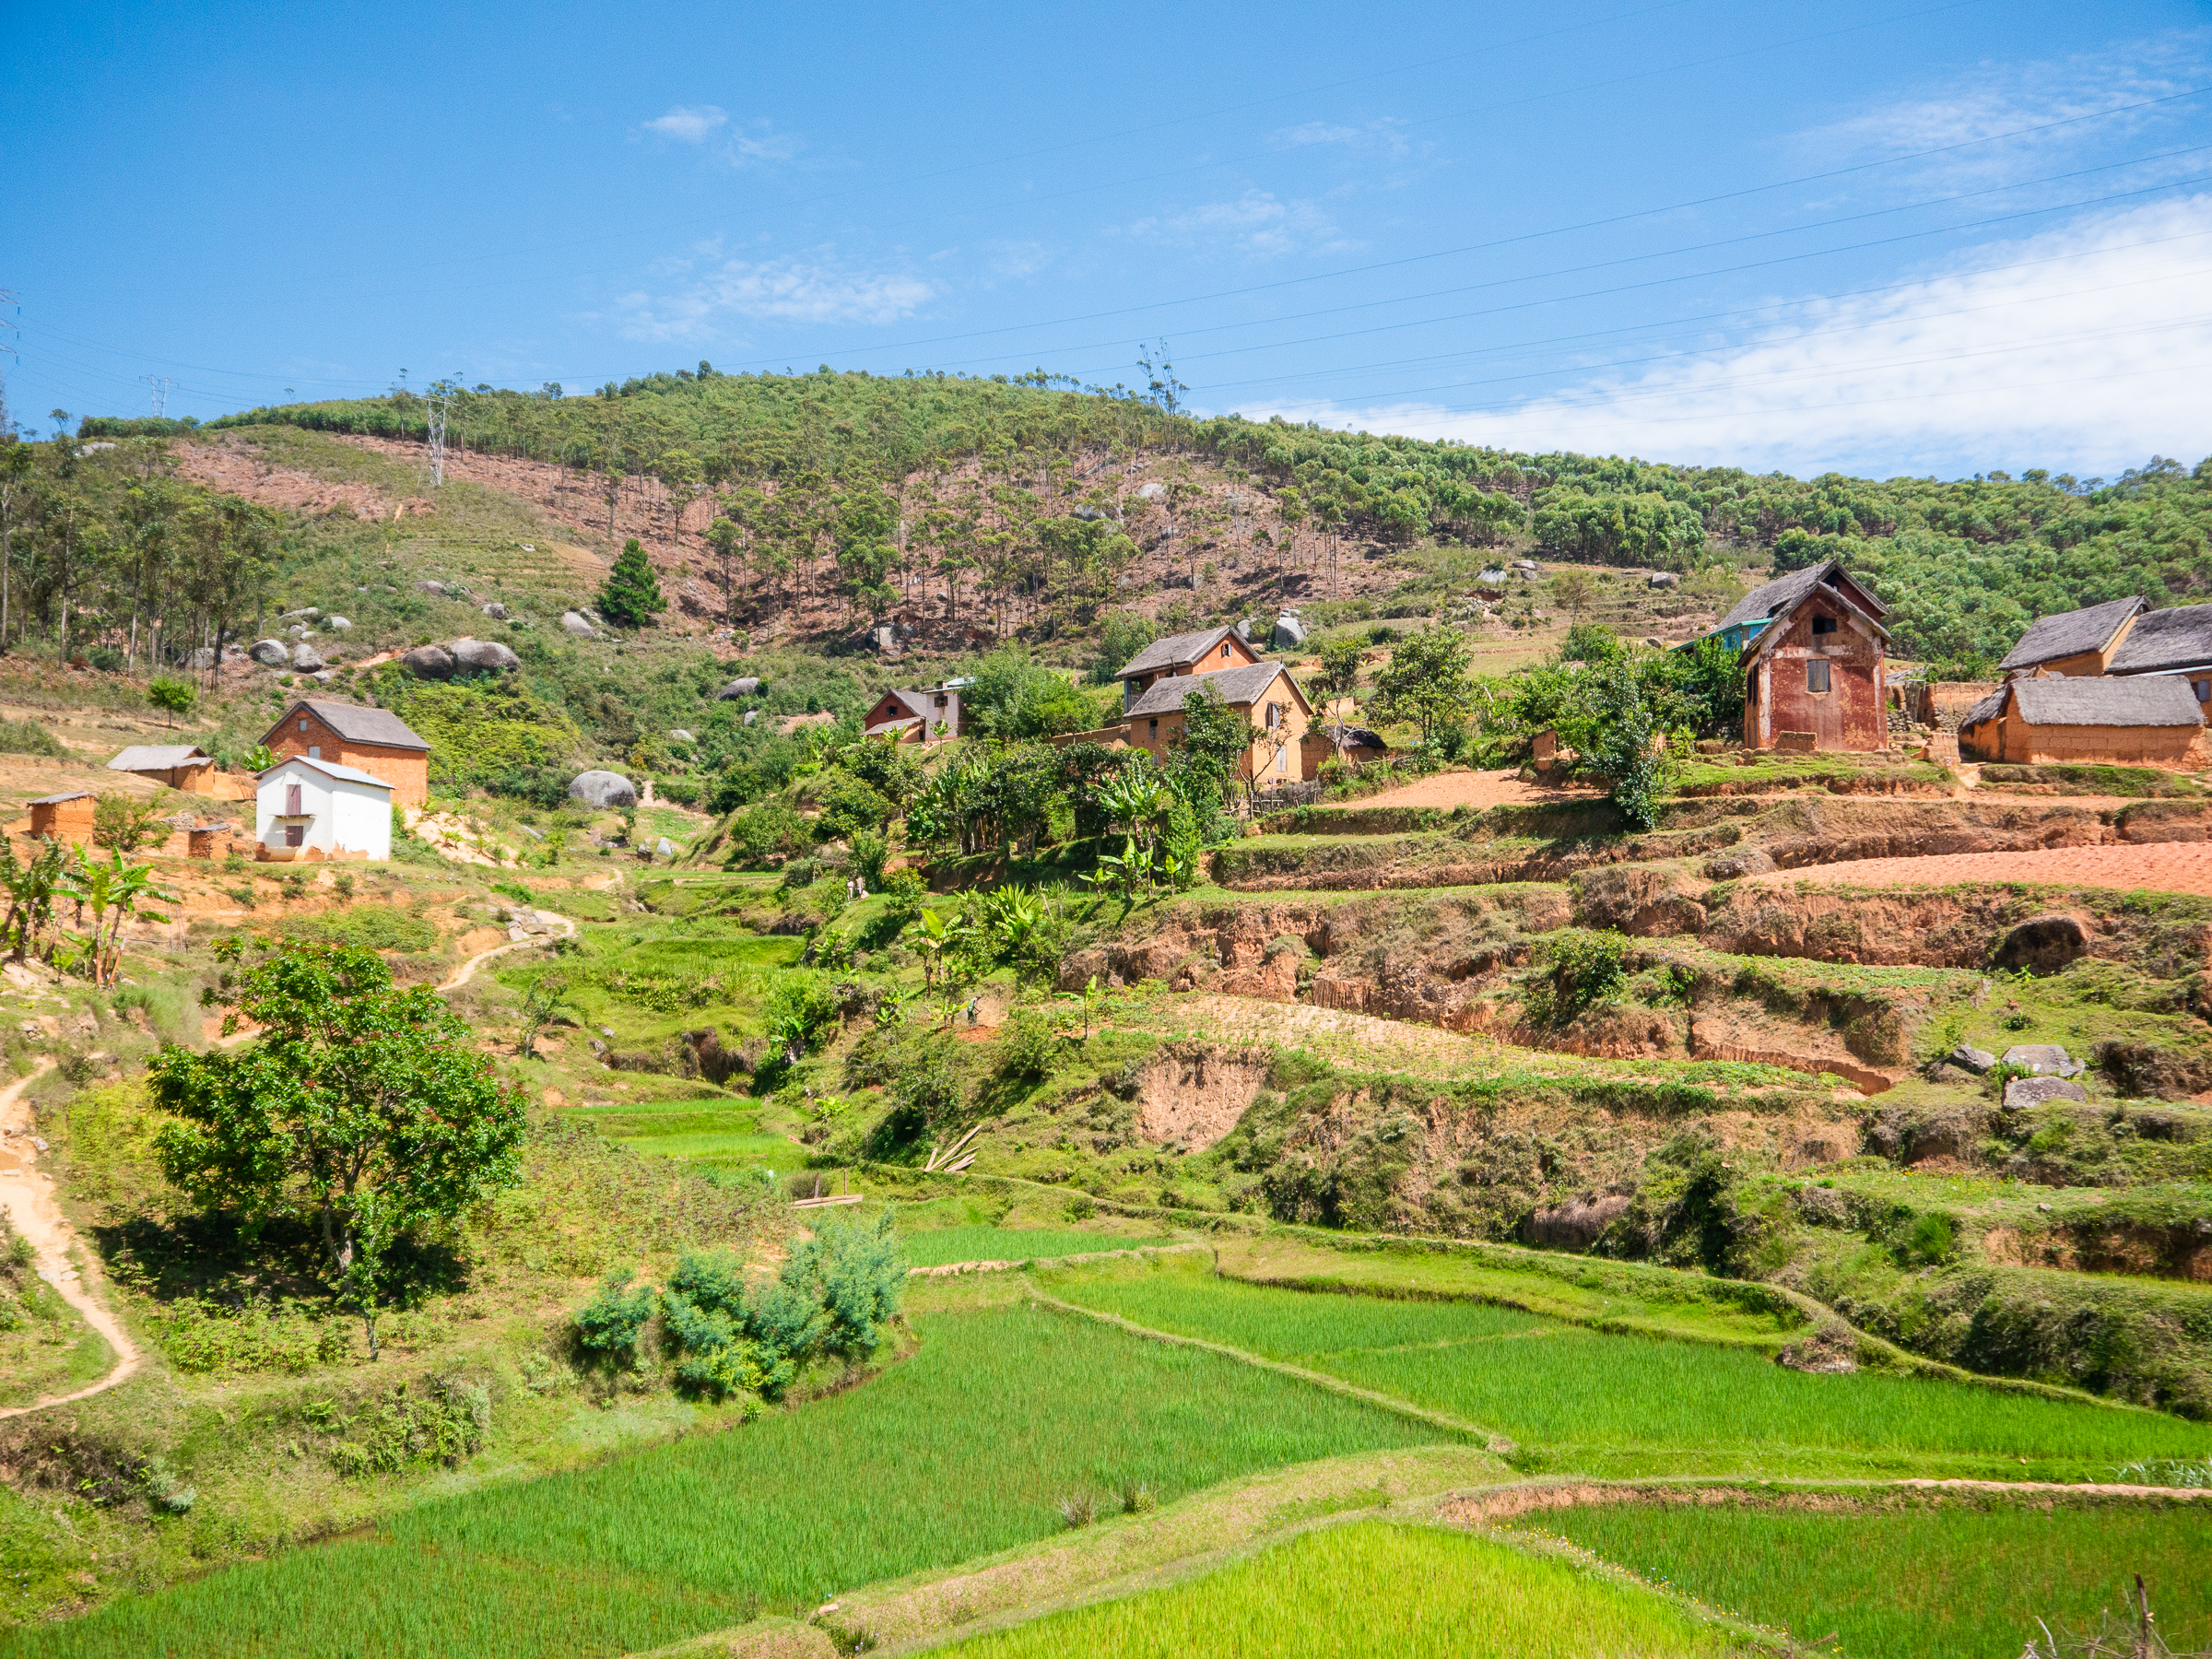 Green landscape and rice fields in Madagascar